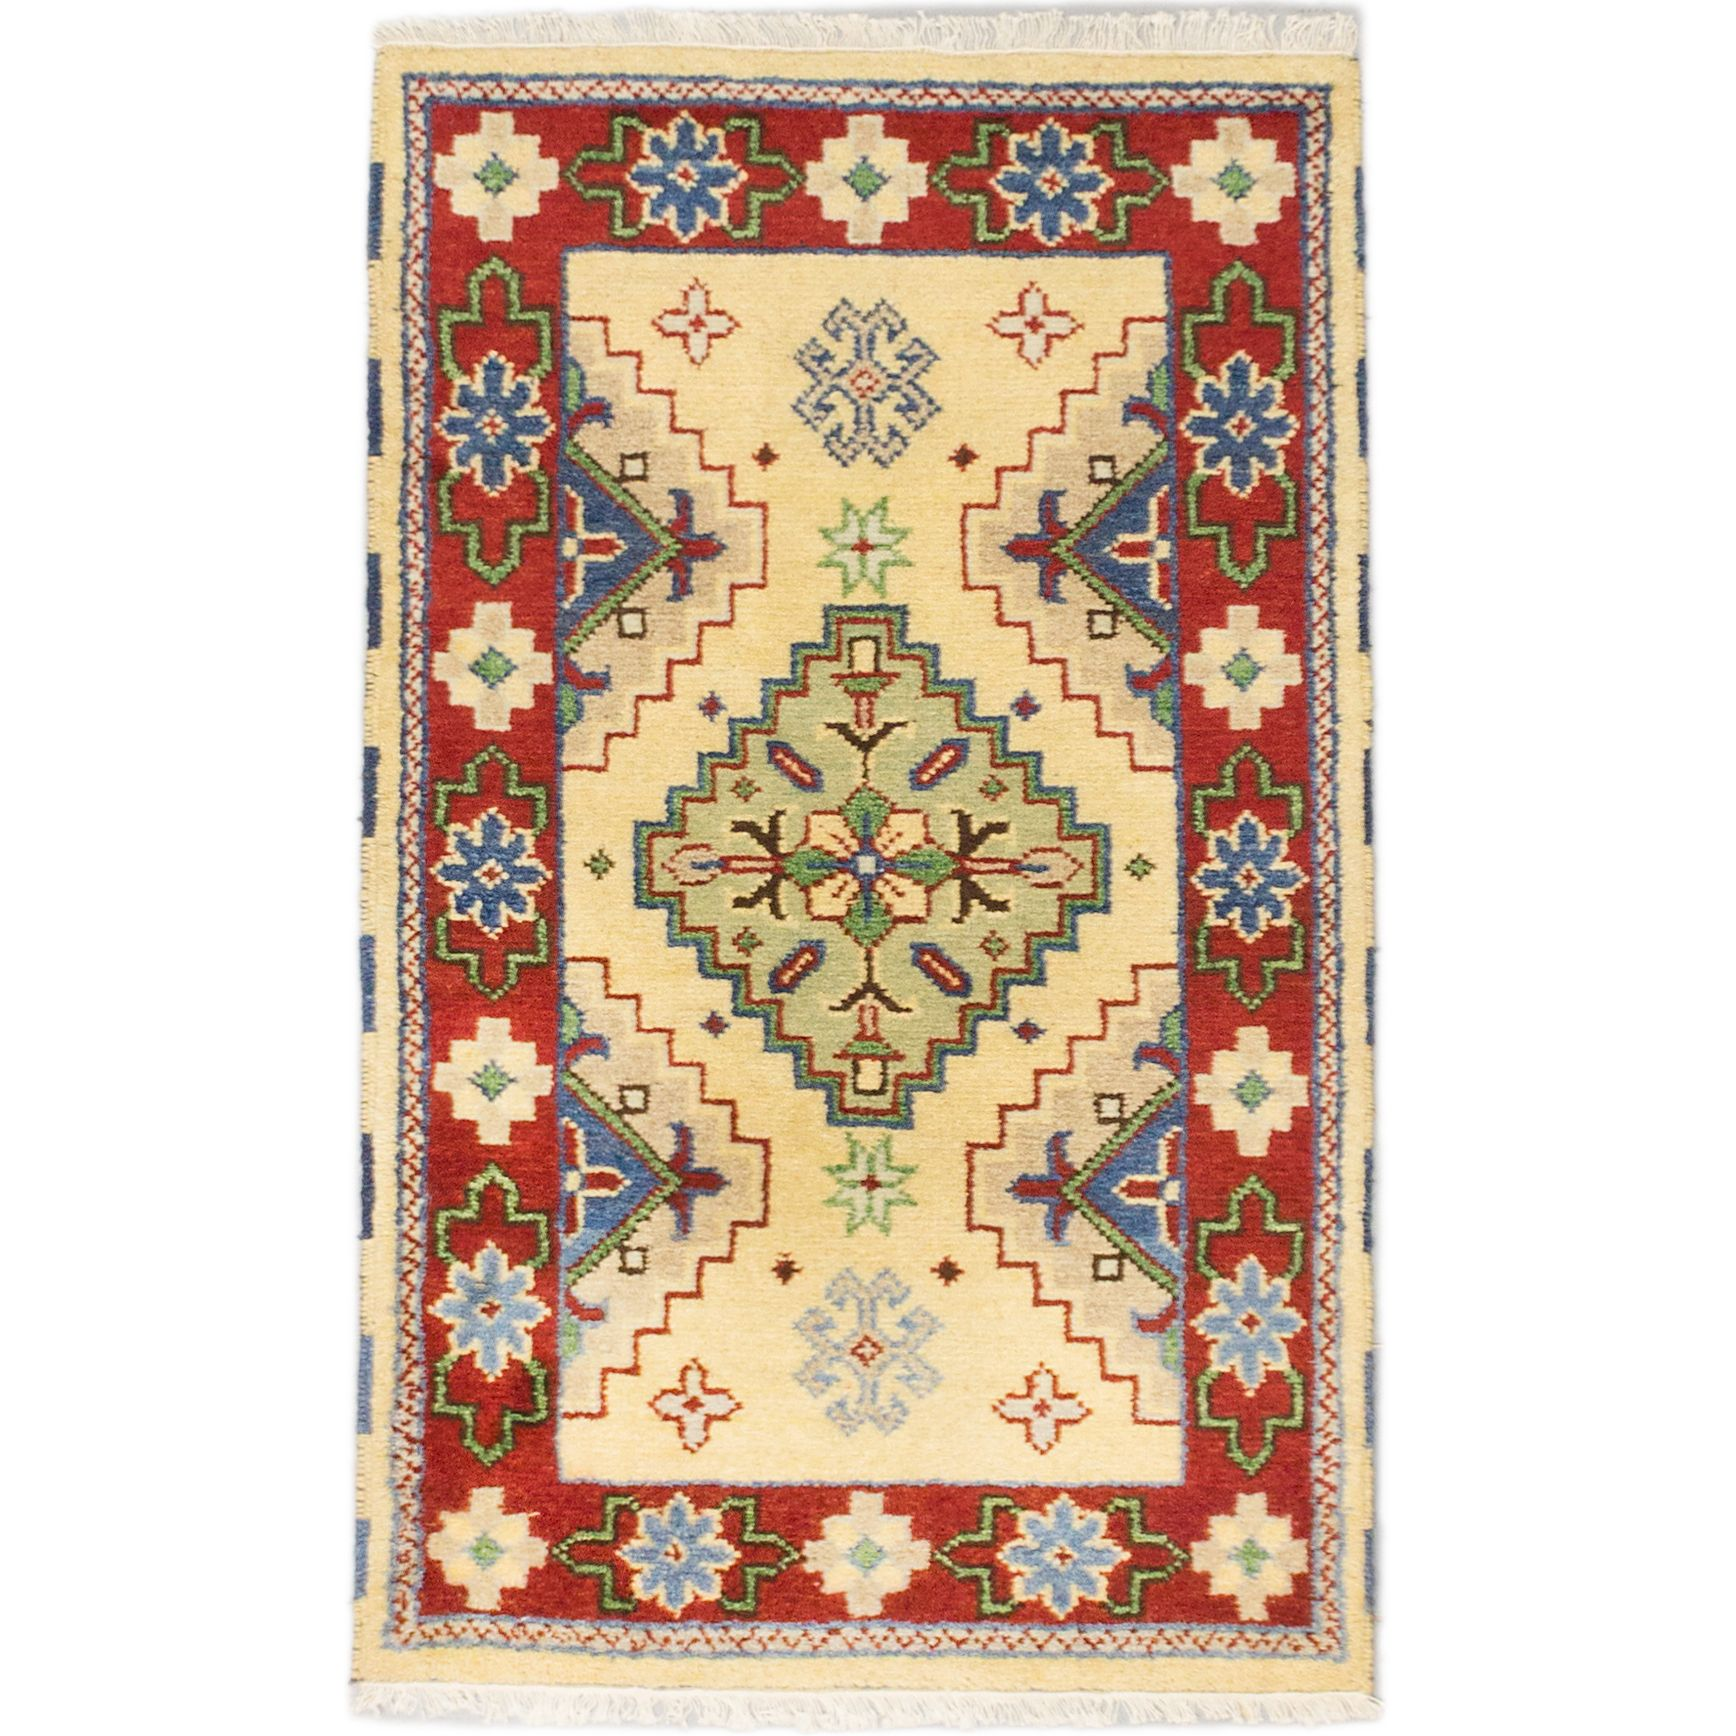 This Fine Hand Knotted Indian Rug Features A Strong Persian Influenced Design